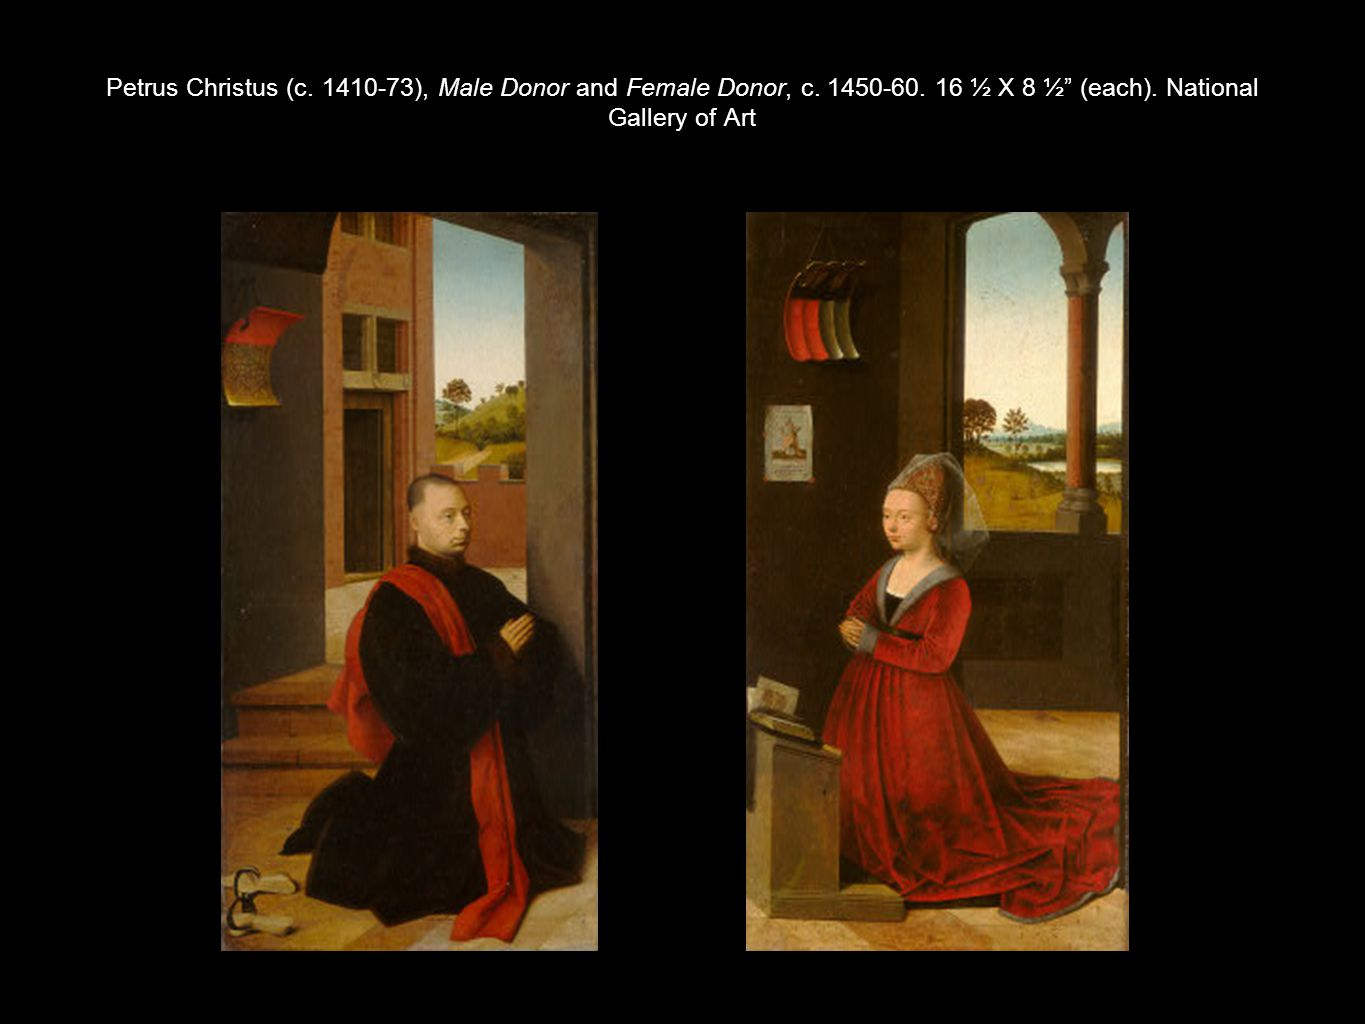 Petrus Christus (c. 1410-73), Male Donor and Female Donor, c. 1450-60